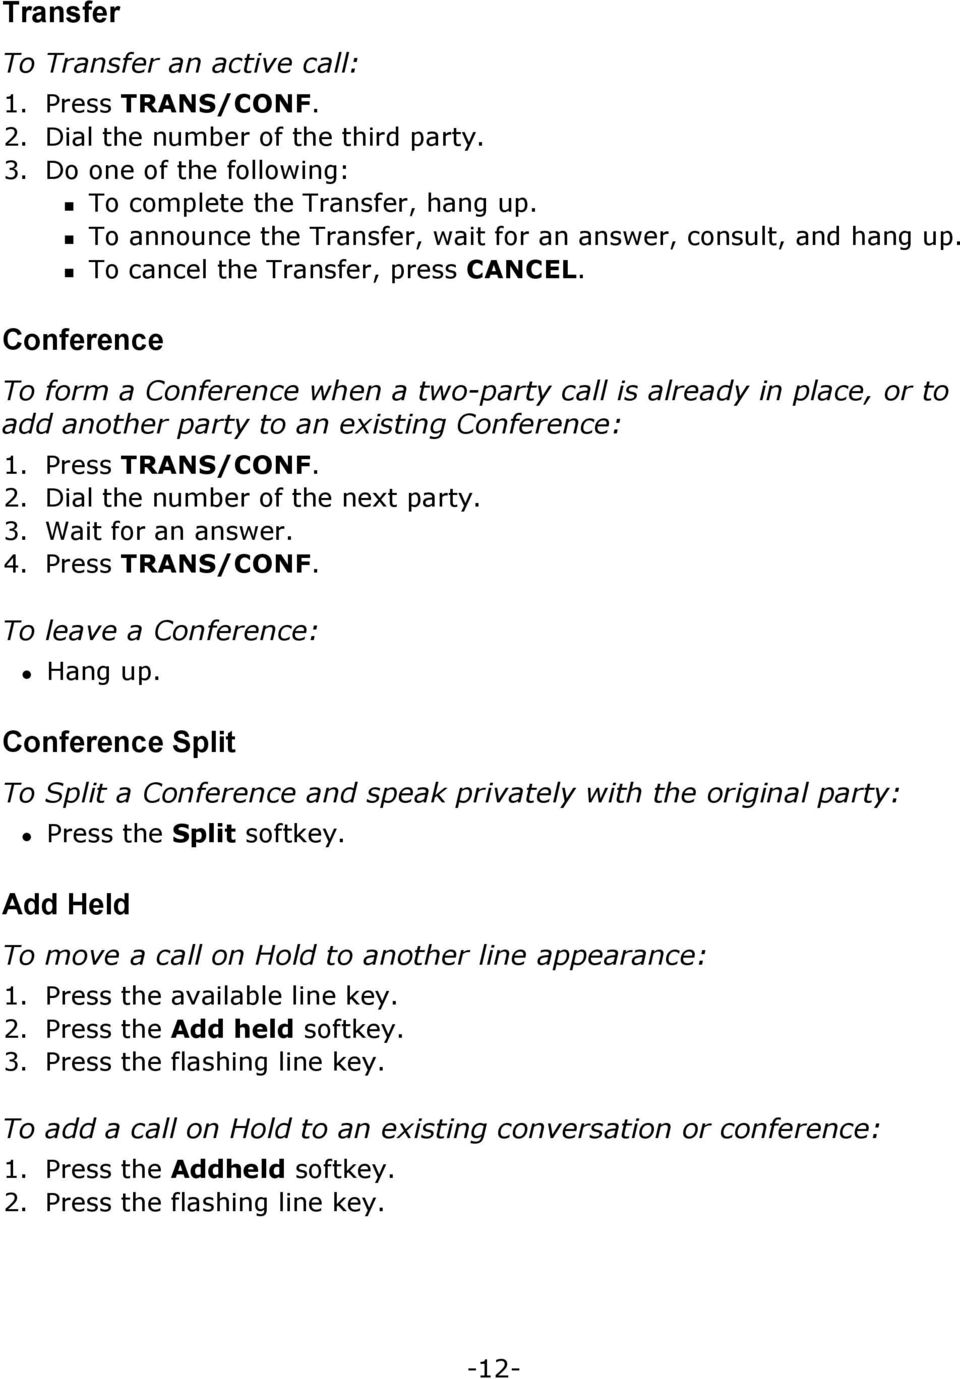 Conference To form a Conference when a two-party call is already in place, or to add another party to an existing Conference: 1. Press TRANS/CONF. 2. Dial the number of the next party. 3.